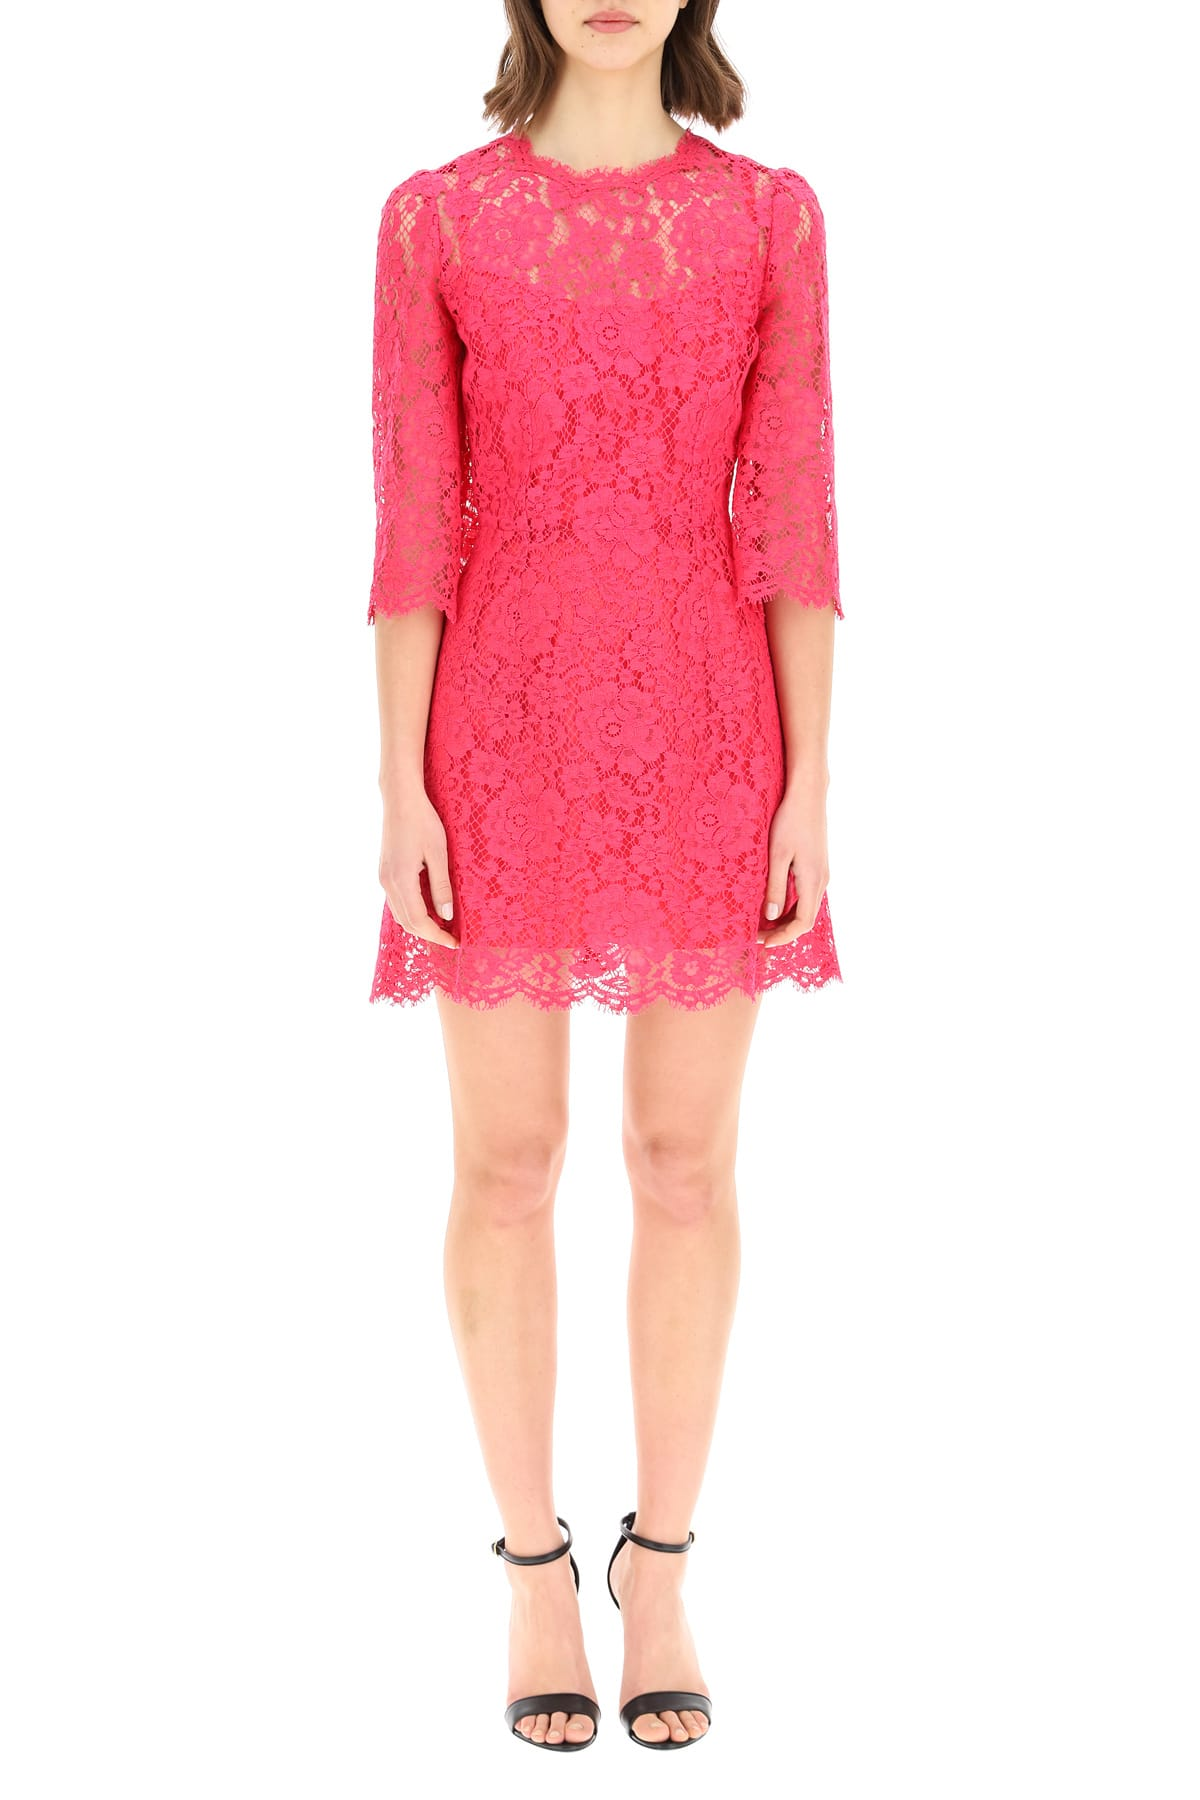 Dolce & Gabbana CORDONETTO LACE DRESS